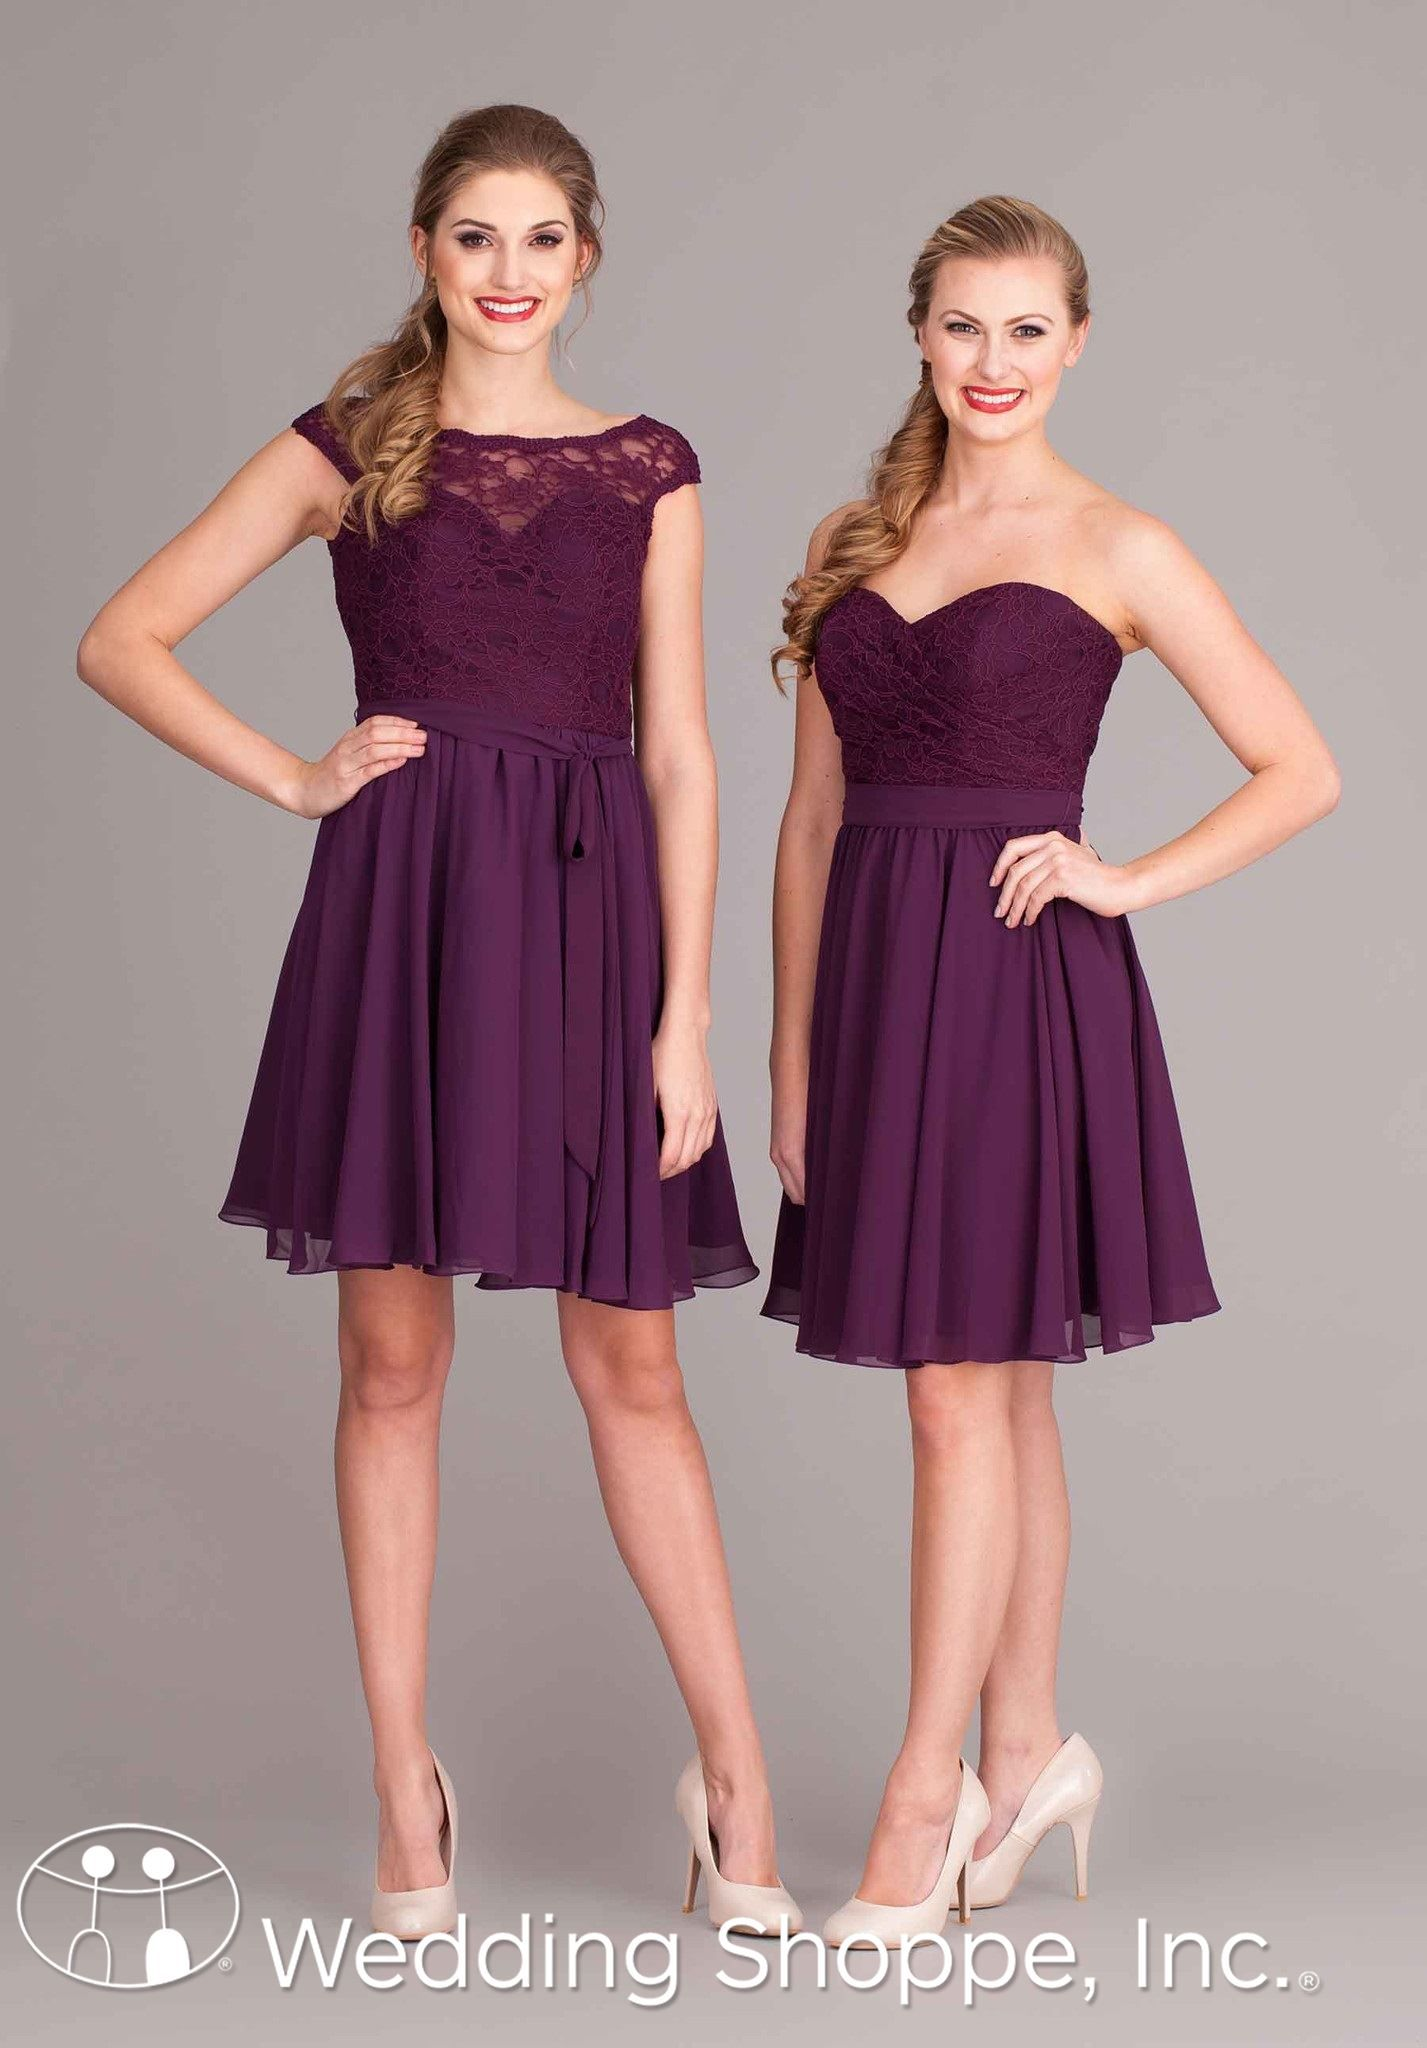 Short Lace And Chiffon Bridesmaid Dresses In Eggplant